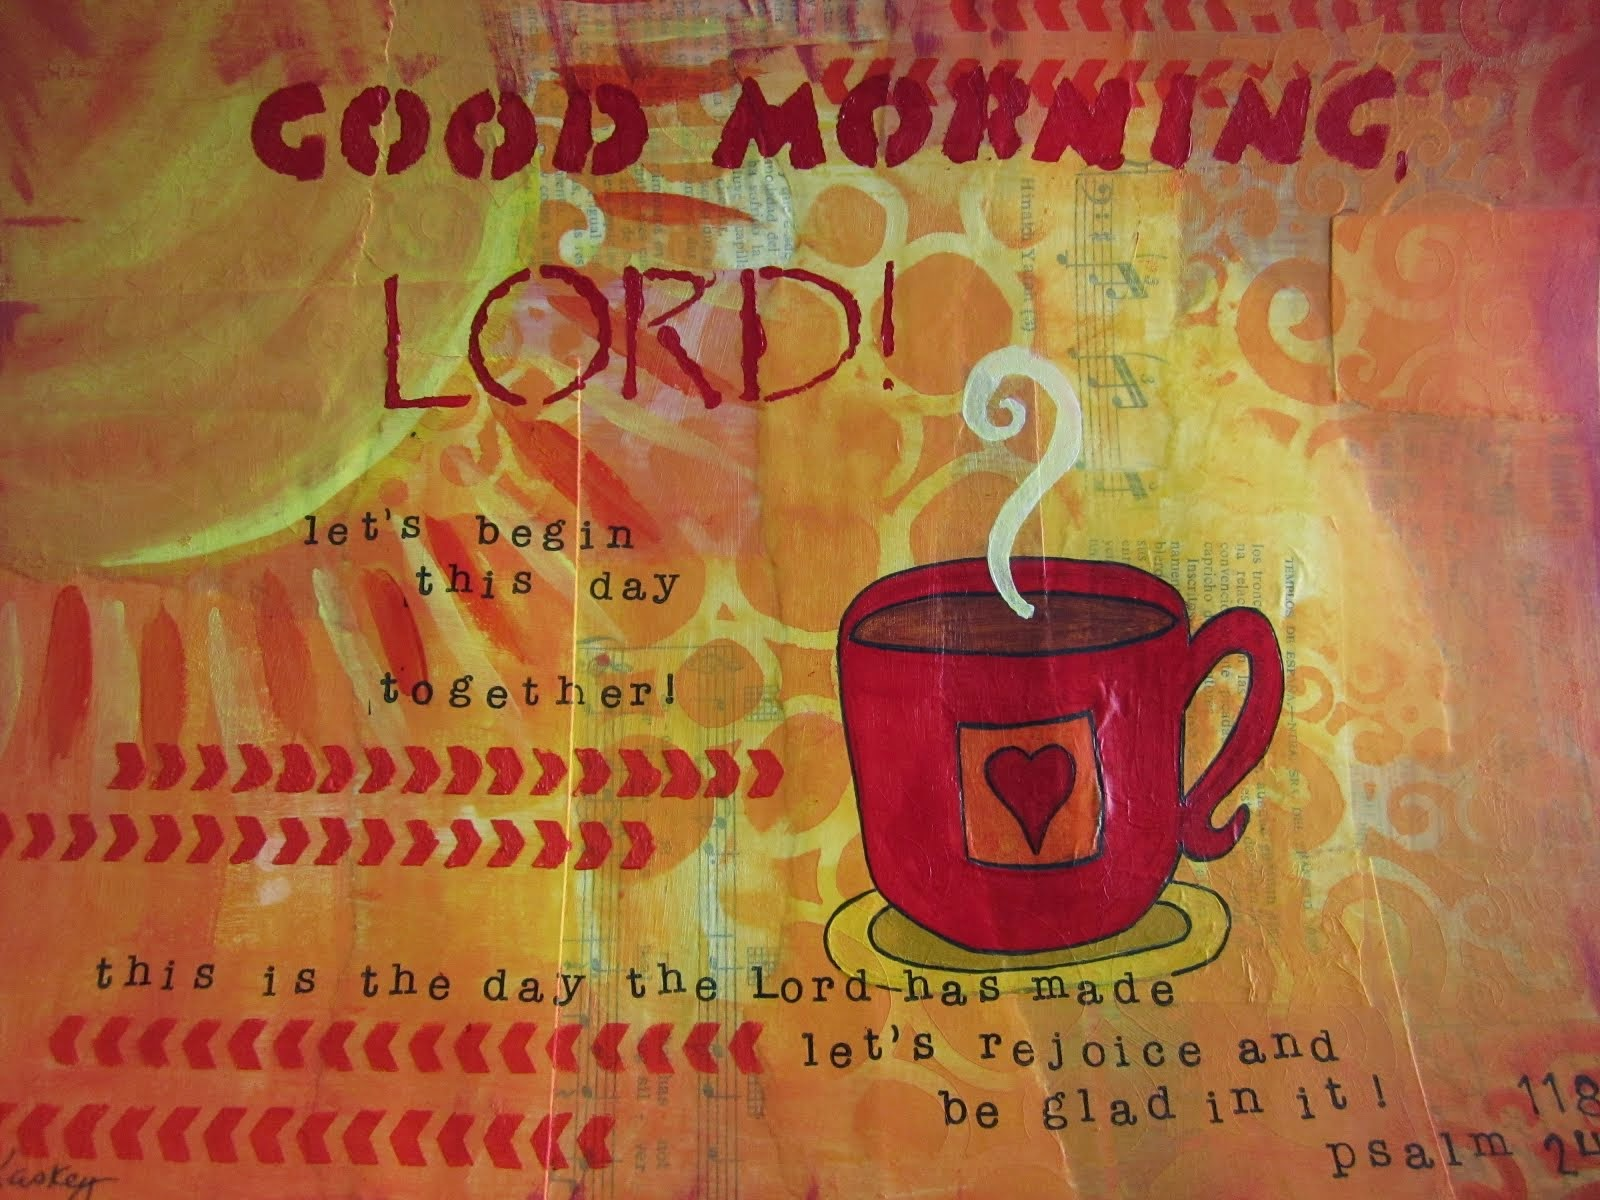 Good Morning, Lord!